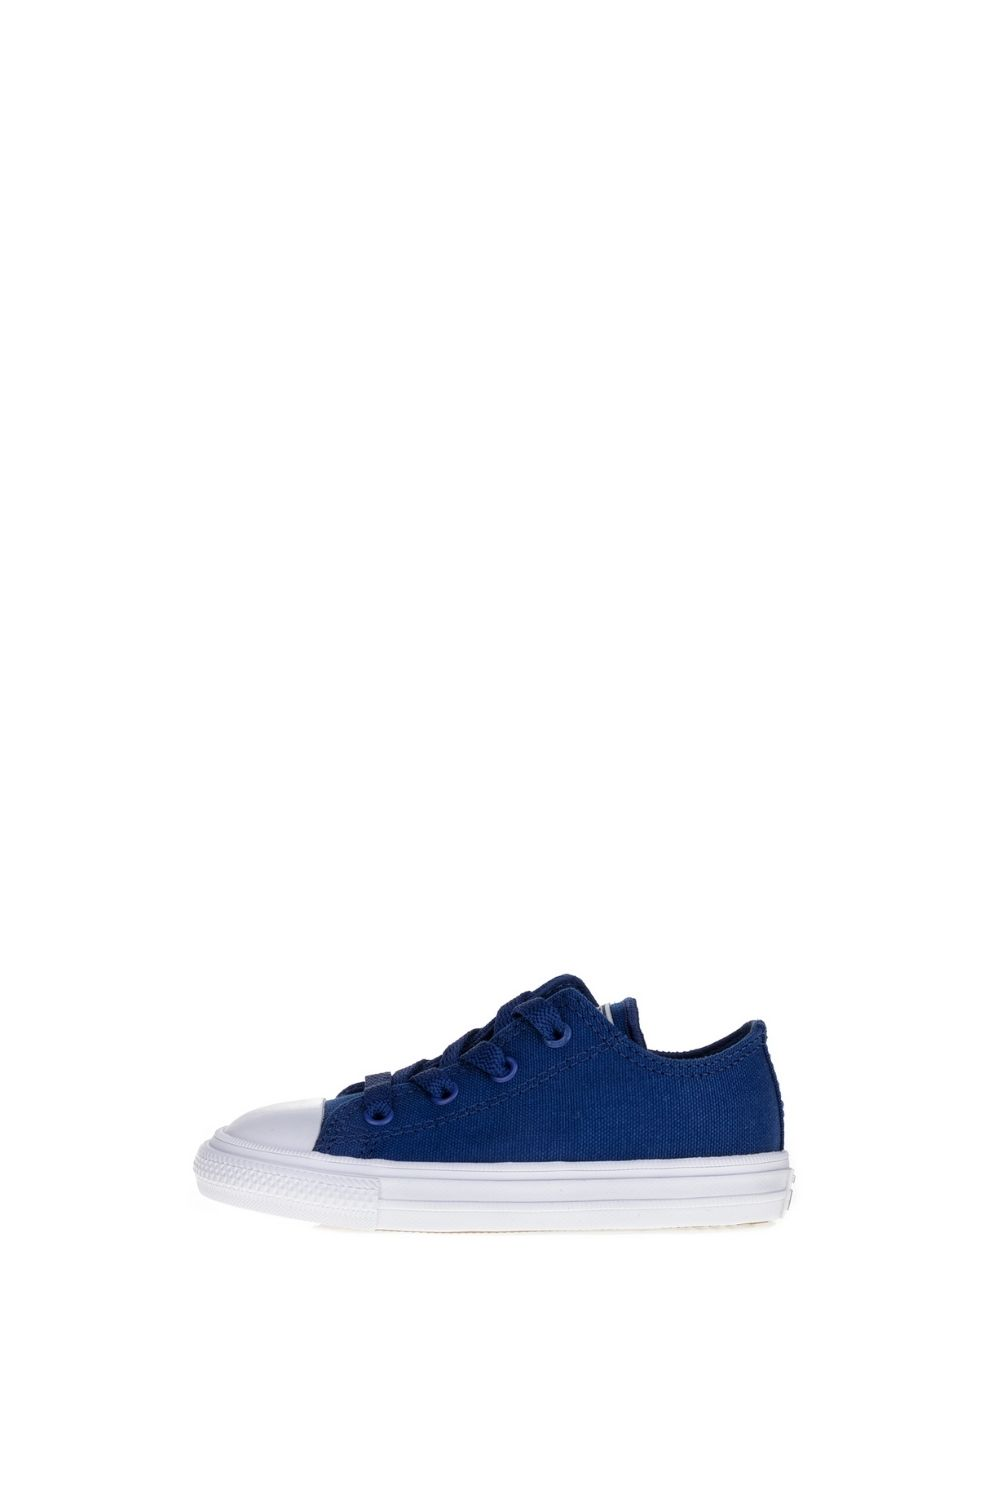 CONVERSE – Βρεφικά ψηλά sneakers CONVERSE Chuck Taylor All Star II Ox μπλε